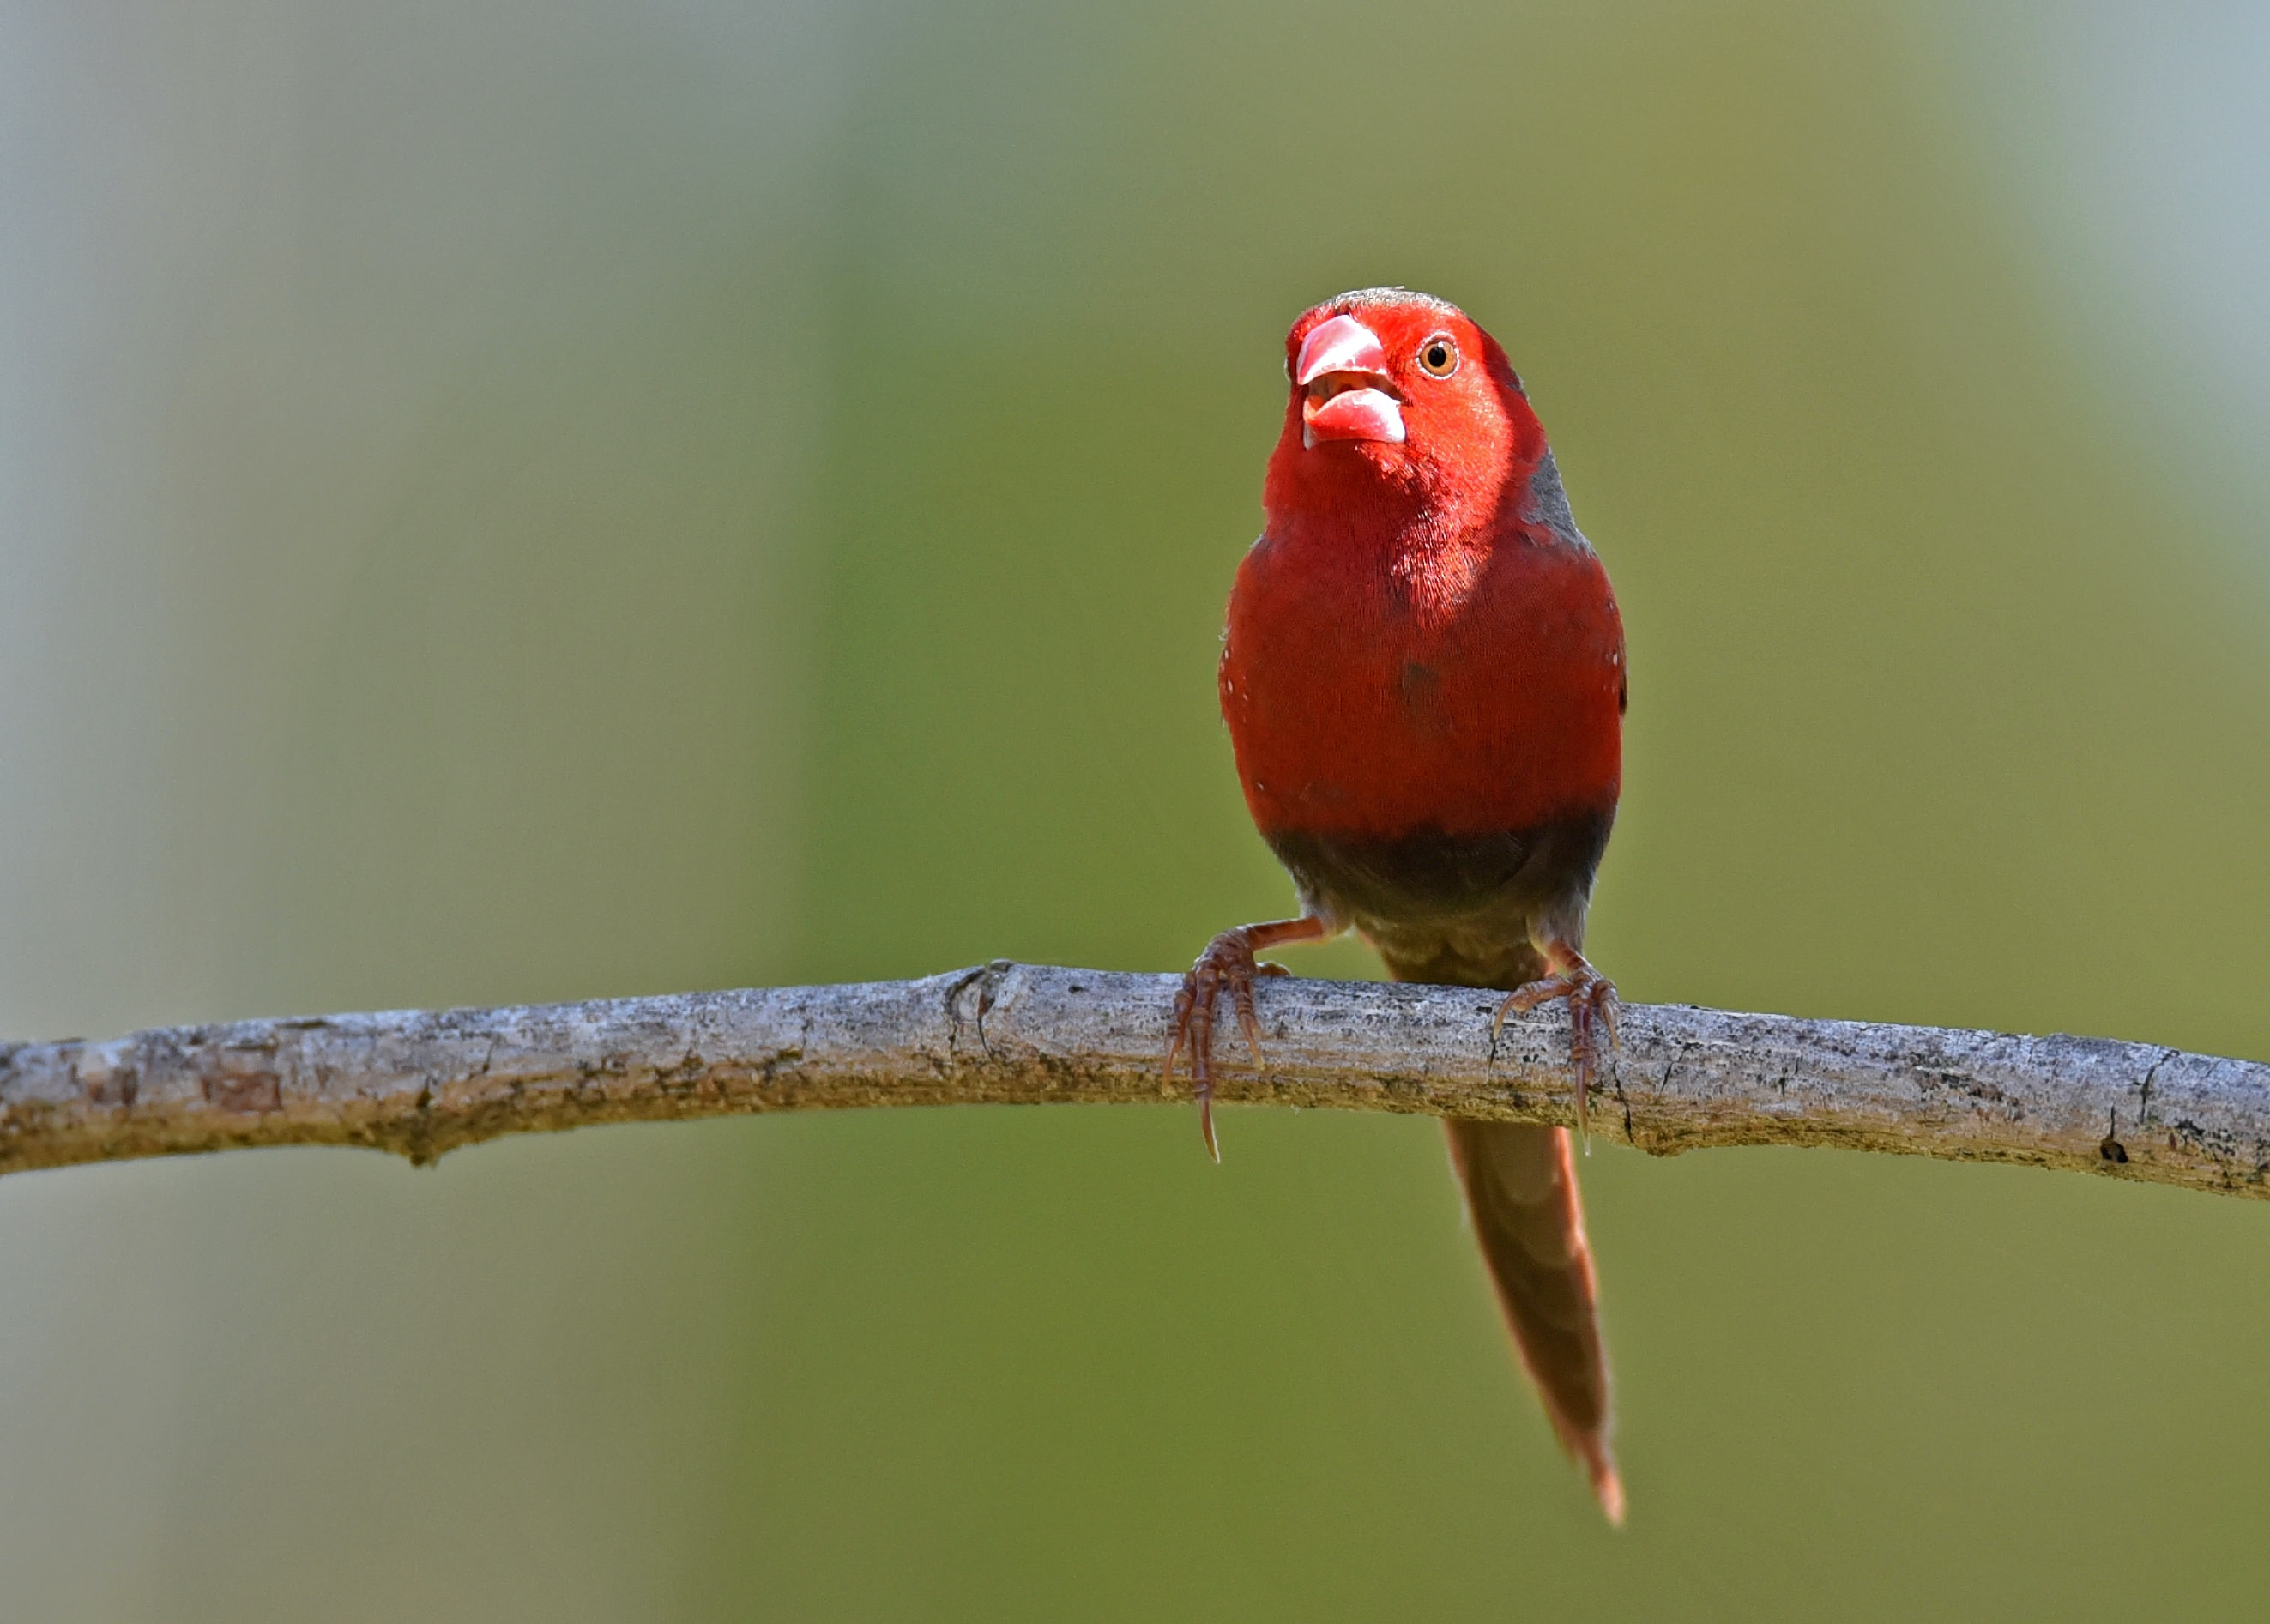 shallow focus photography of red bird on brown stick